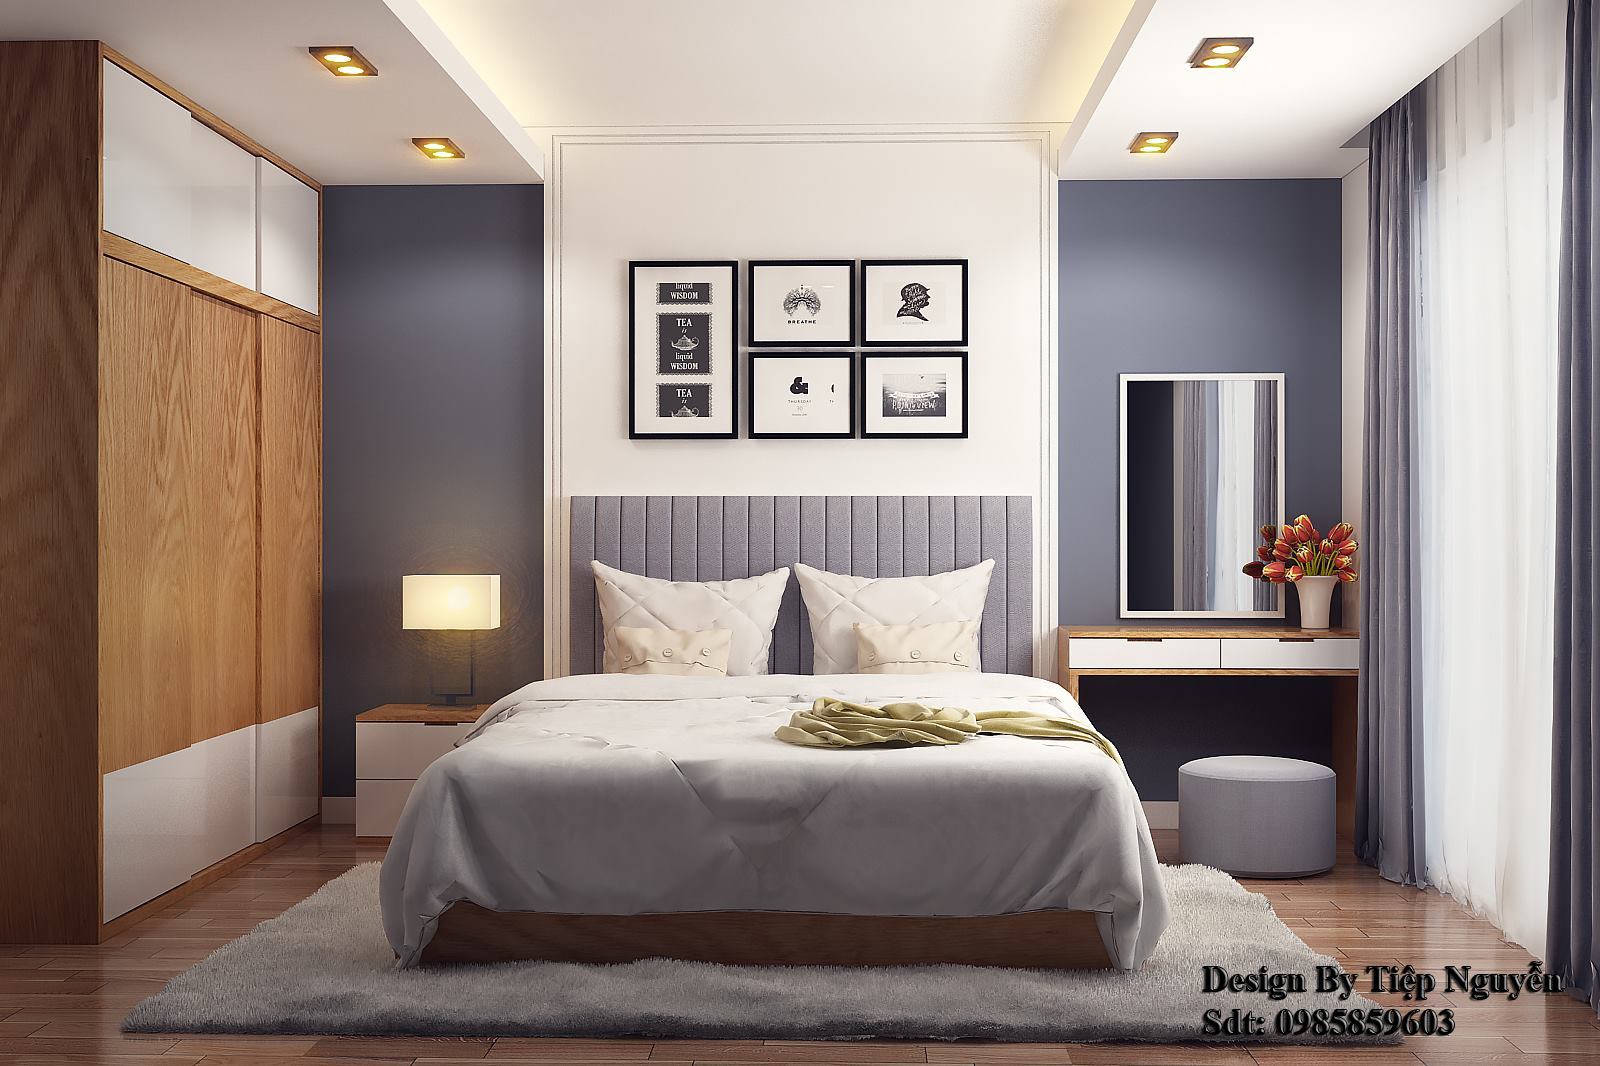 Thumbnail Bedroom #1 - Tiệp Nguyễn